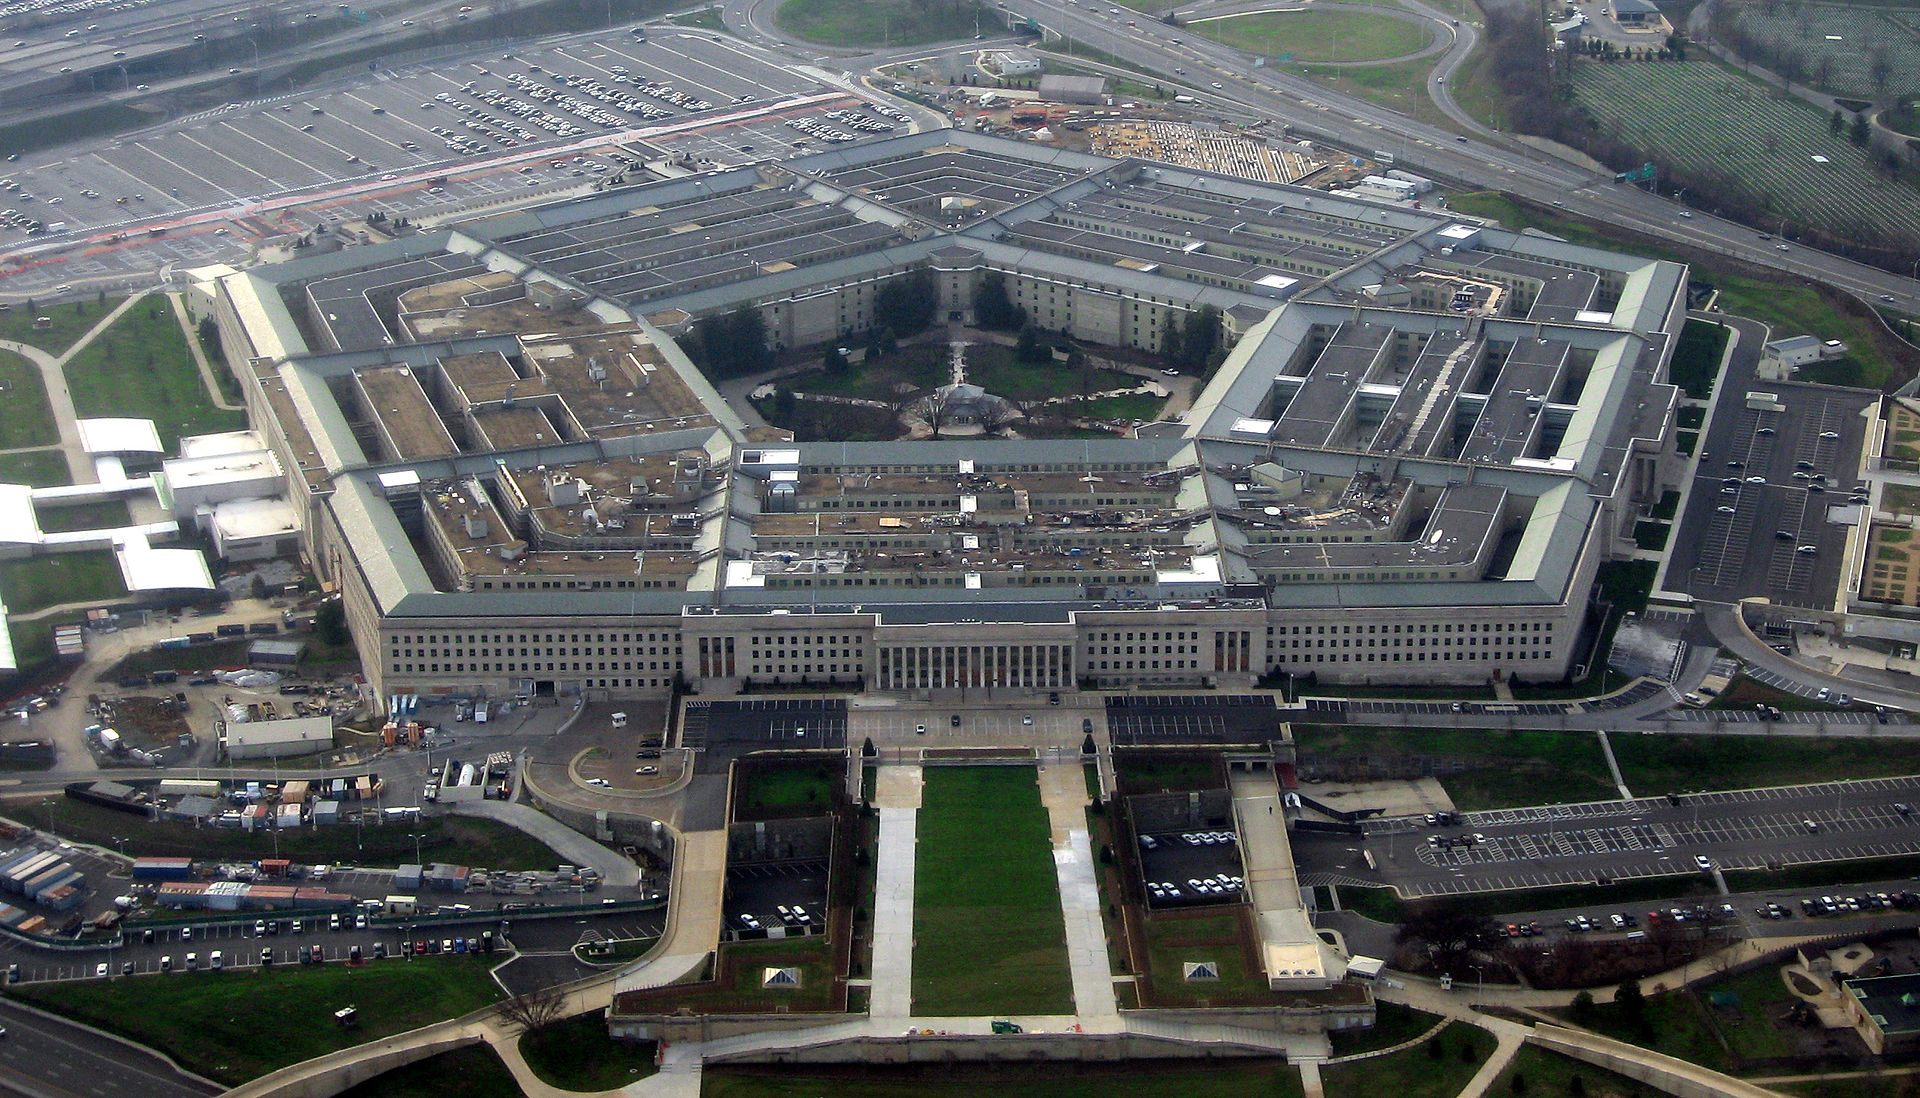 The Pentagon's use of FOIA is flawed. Now it wants to make it even stricter.